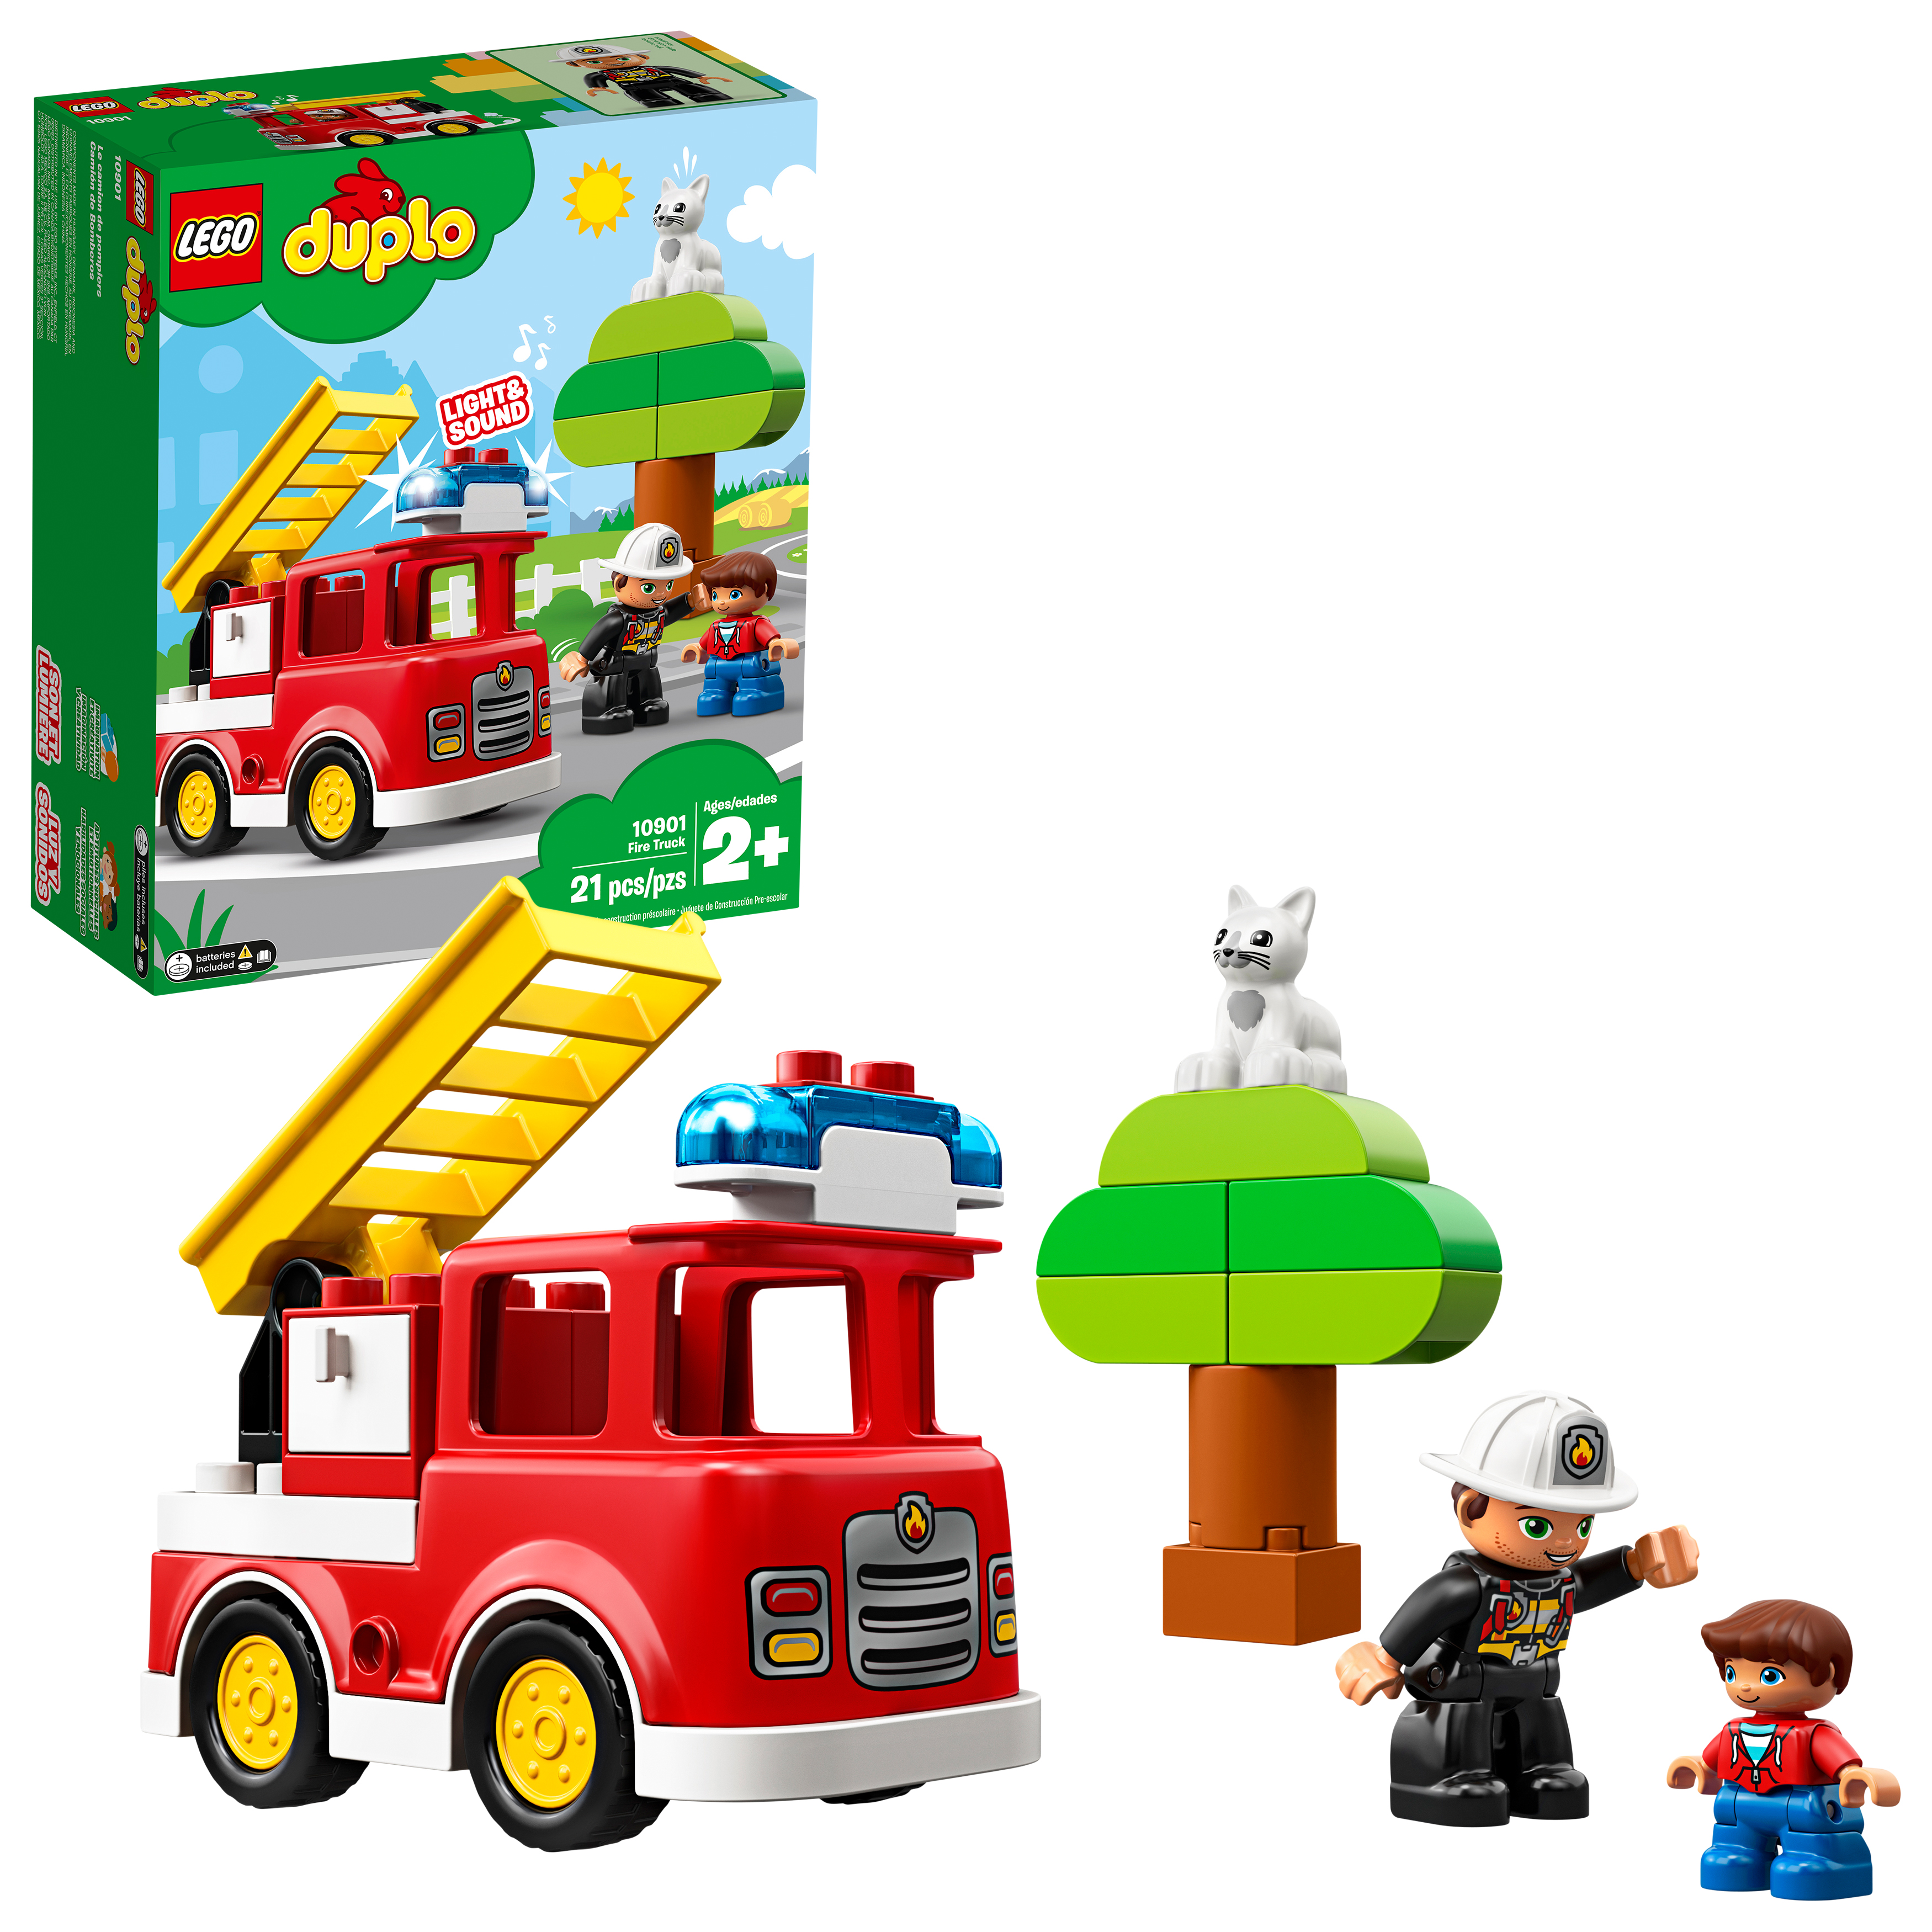 LEGO DUPLO Town Fire Truck 10901 Preschool Building Set